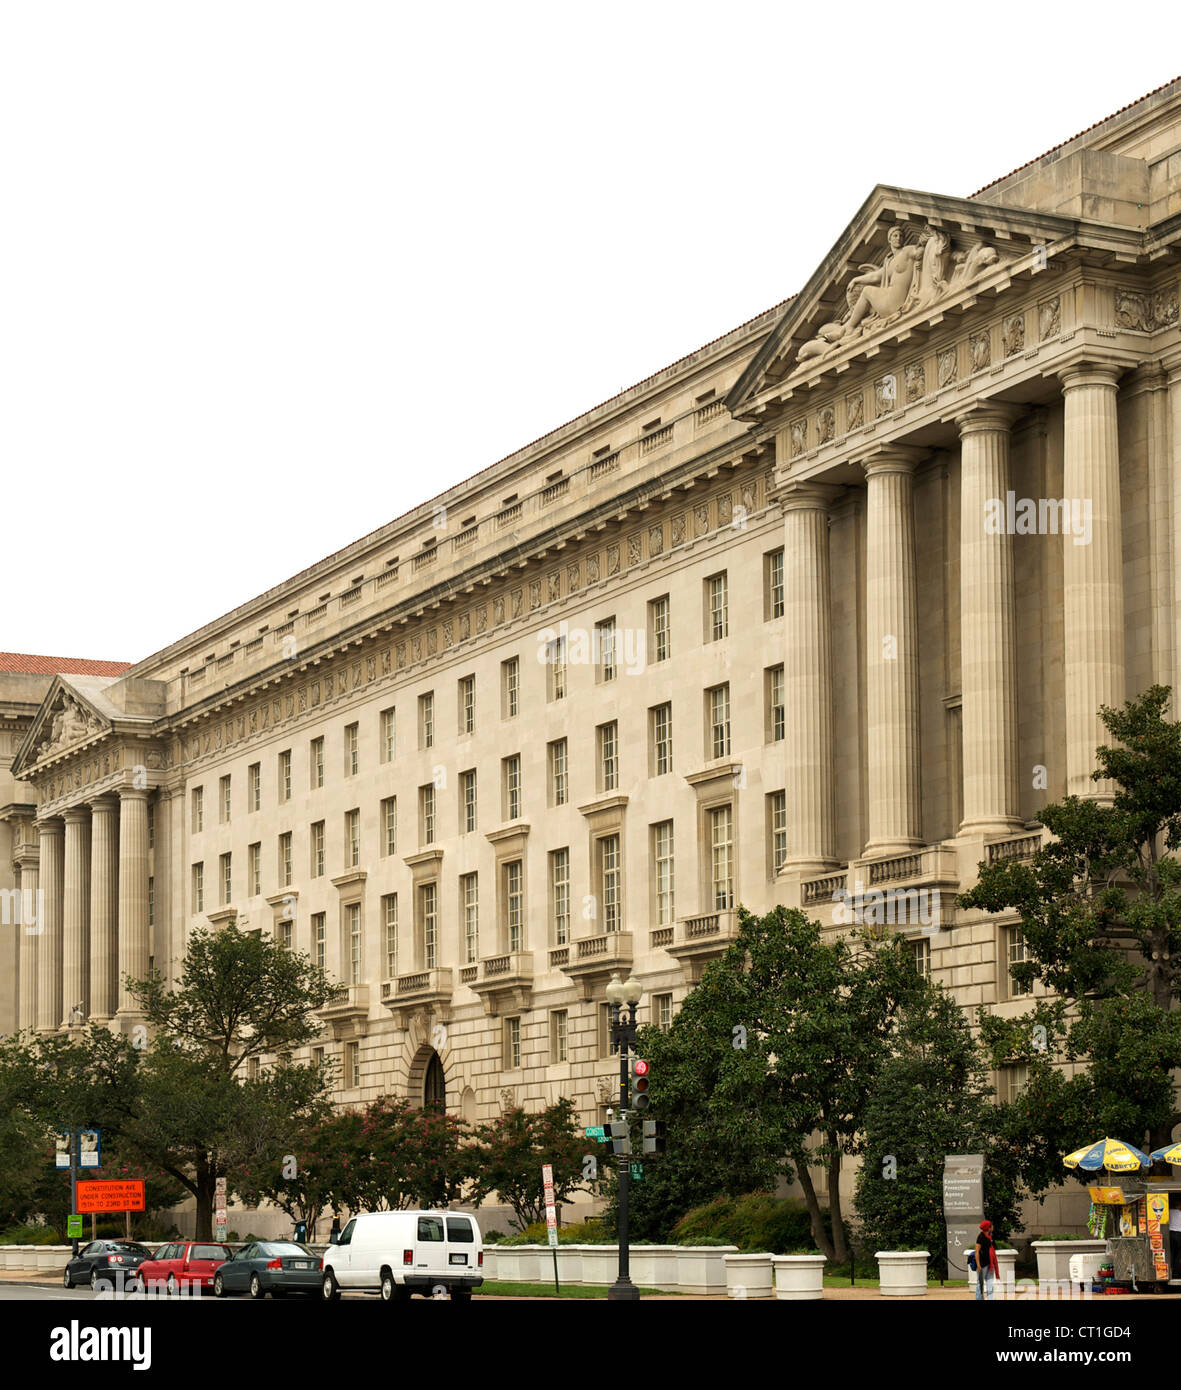 Environmental Protection Agency Building in Washington DC, USA. - Stock Image